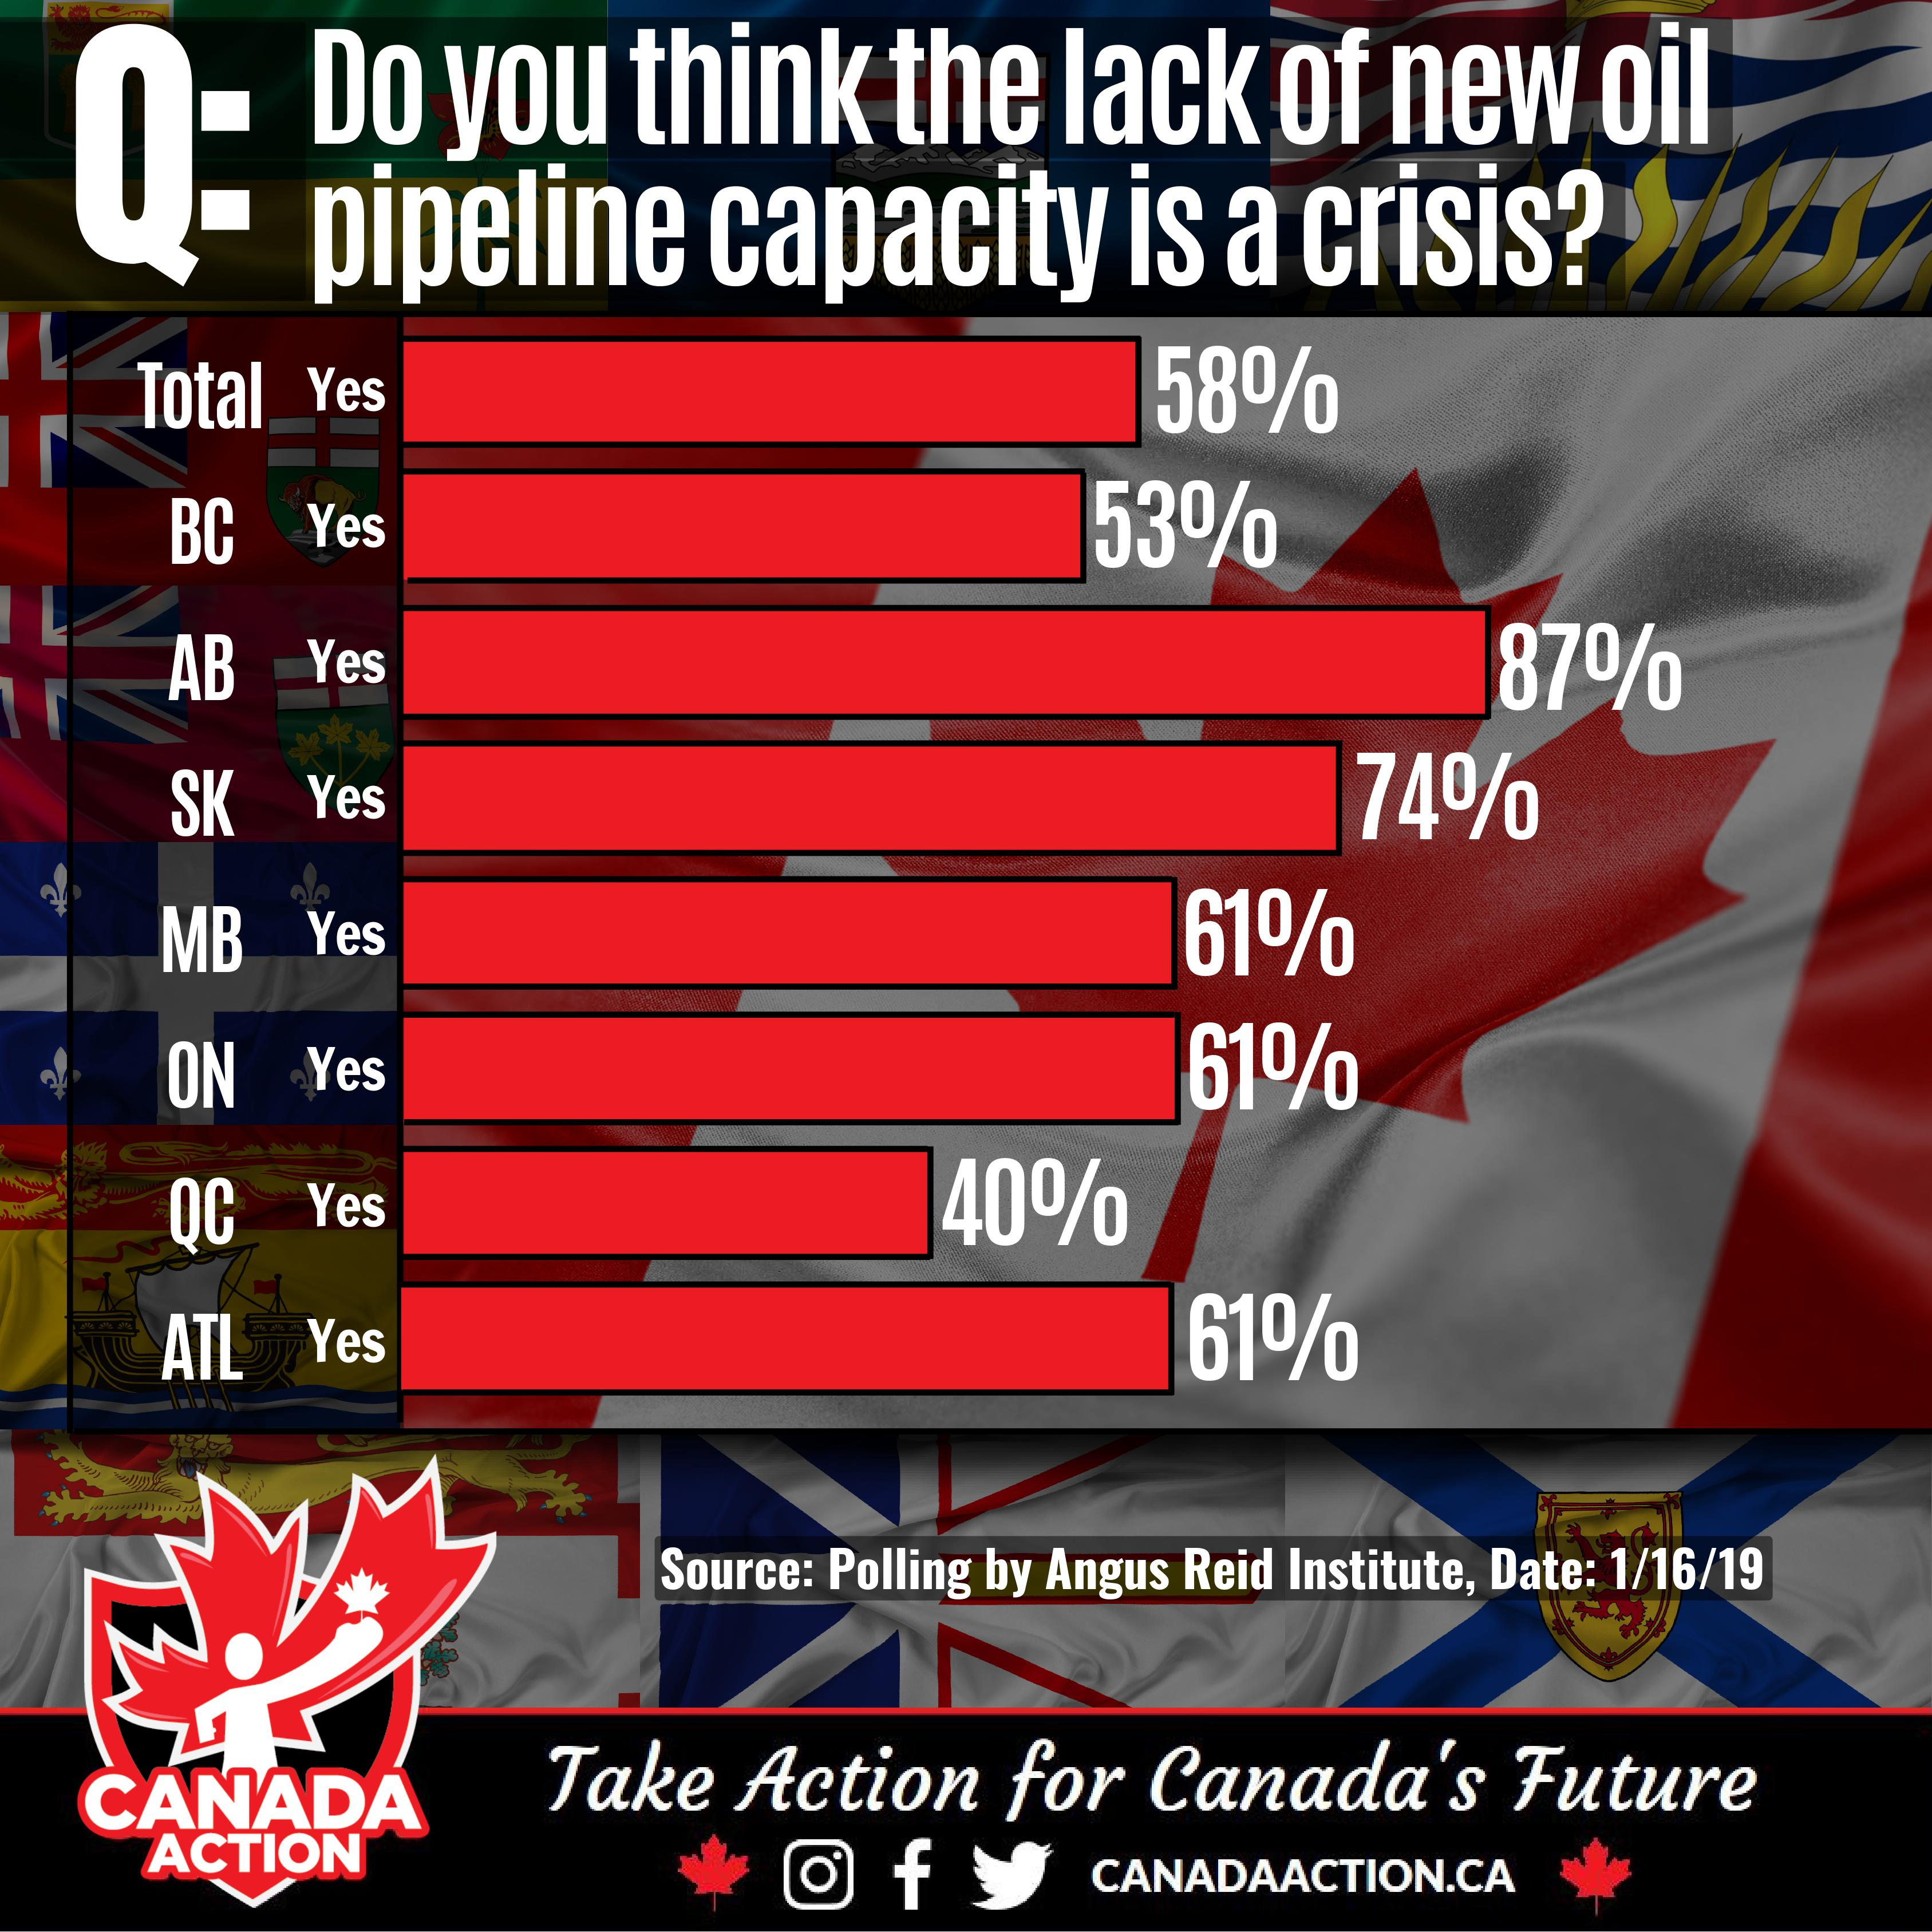 A Majority of Canadians Believe the Lack of Pipeline Capacity is a Crisis